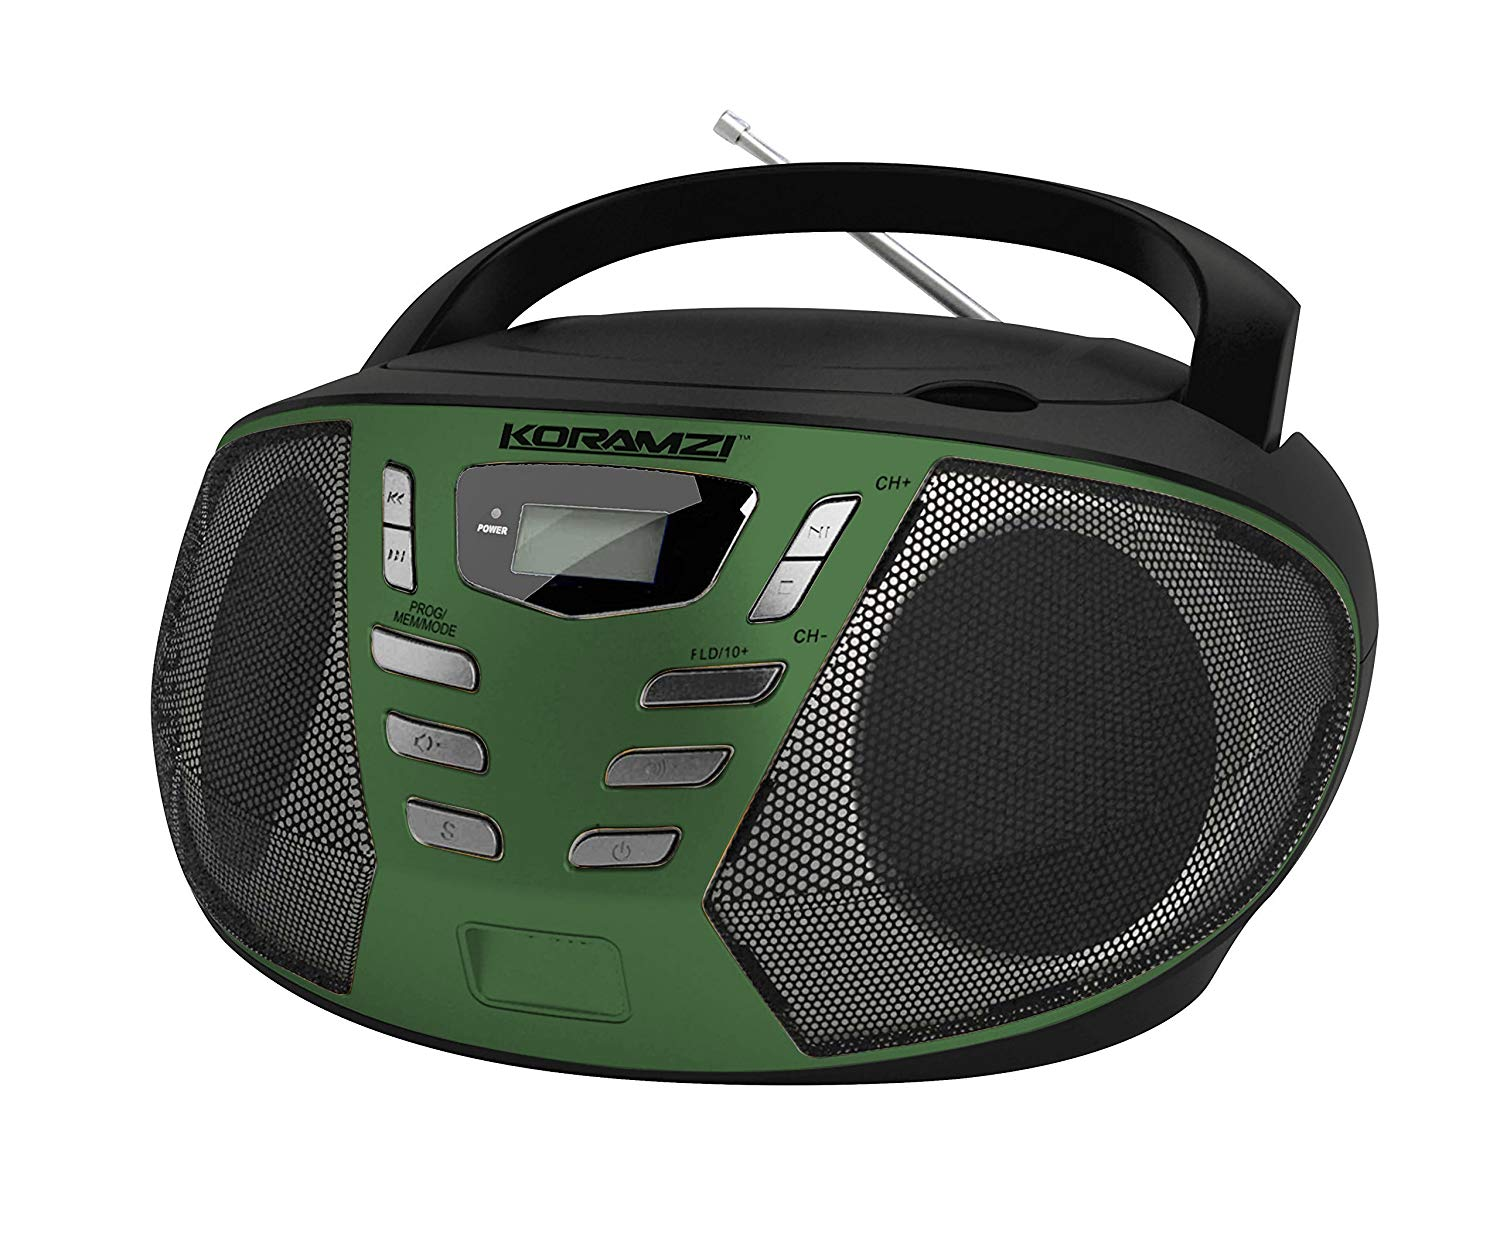 KORAMZI Portable CD Boombox with AM/FM Radio,AUX IN, Top Loading CD Player, Telescopic Antenna, LCD Display for Indoor & Outdoor,Offices,Home,Restaurants,Picnics,School,Camping (Black/Green) CD55-BKG